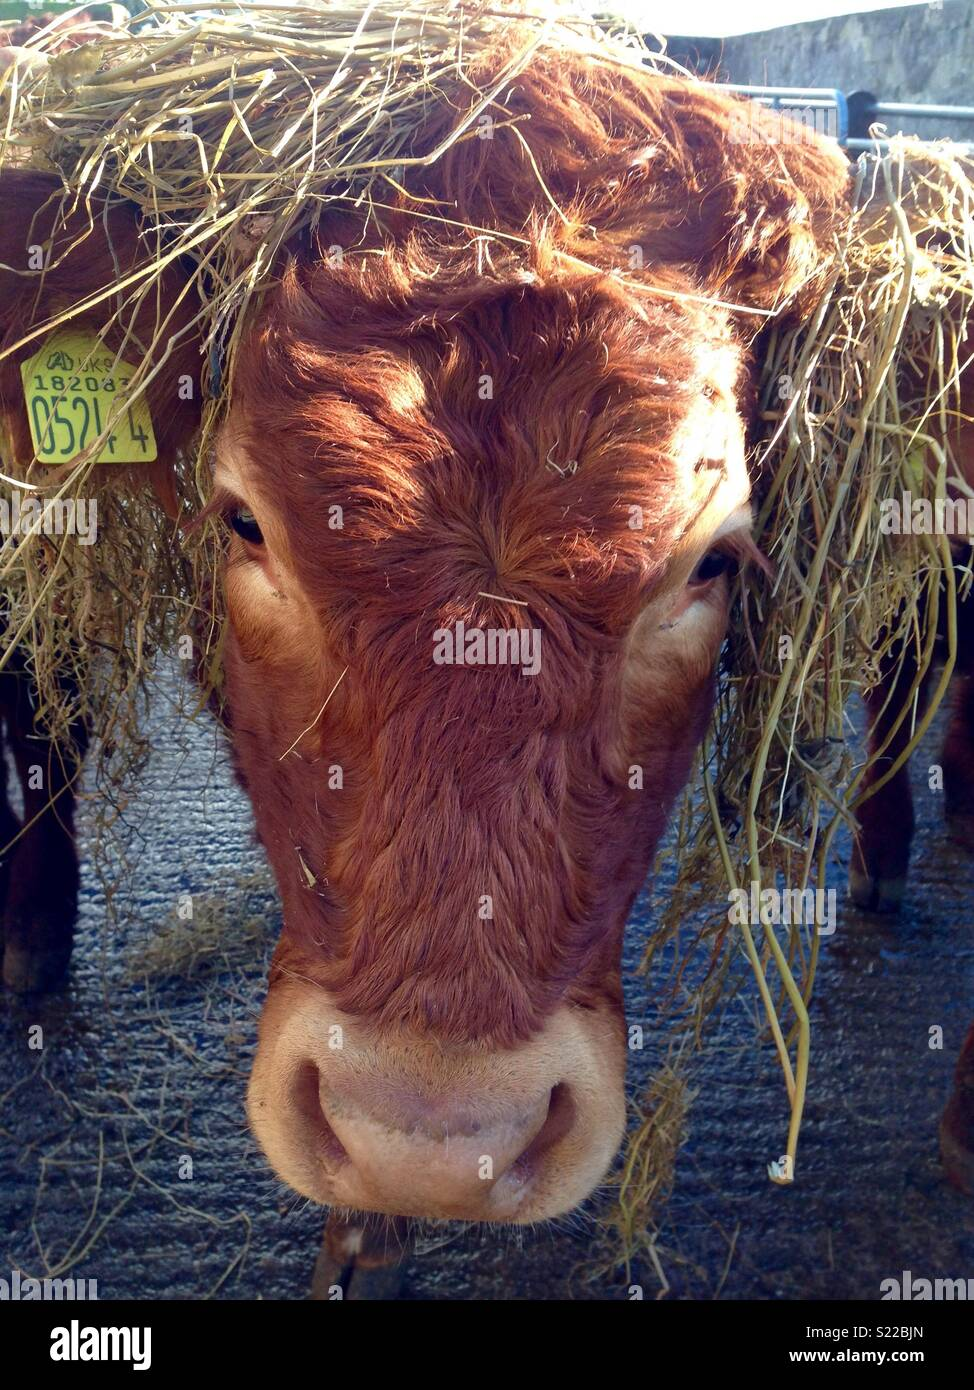 Comical cow with hairs. - Stock Image